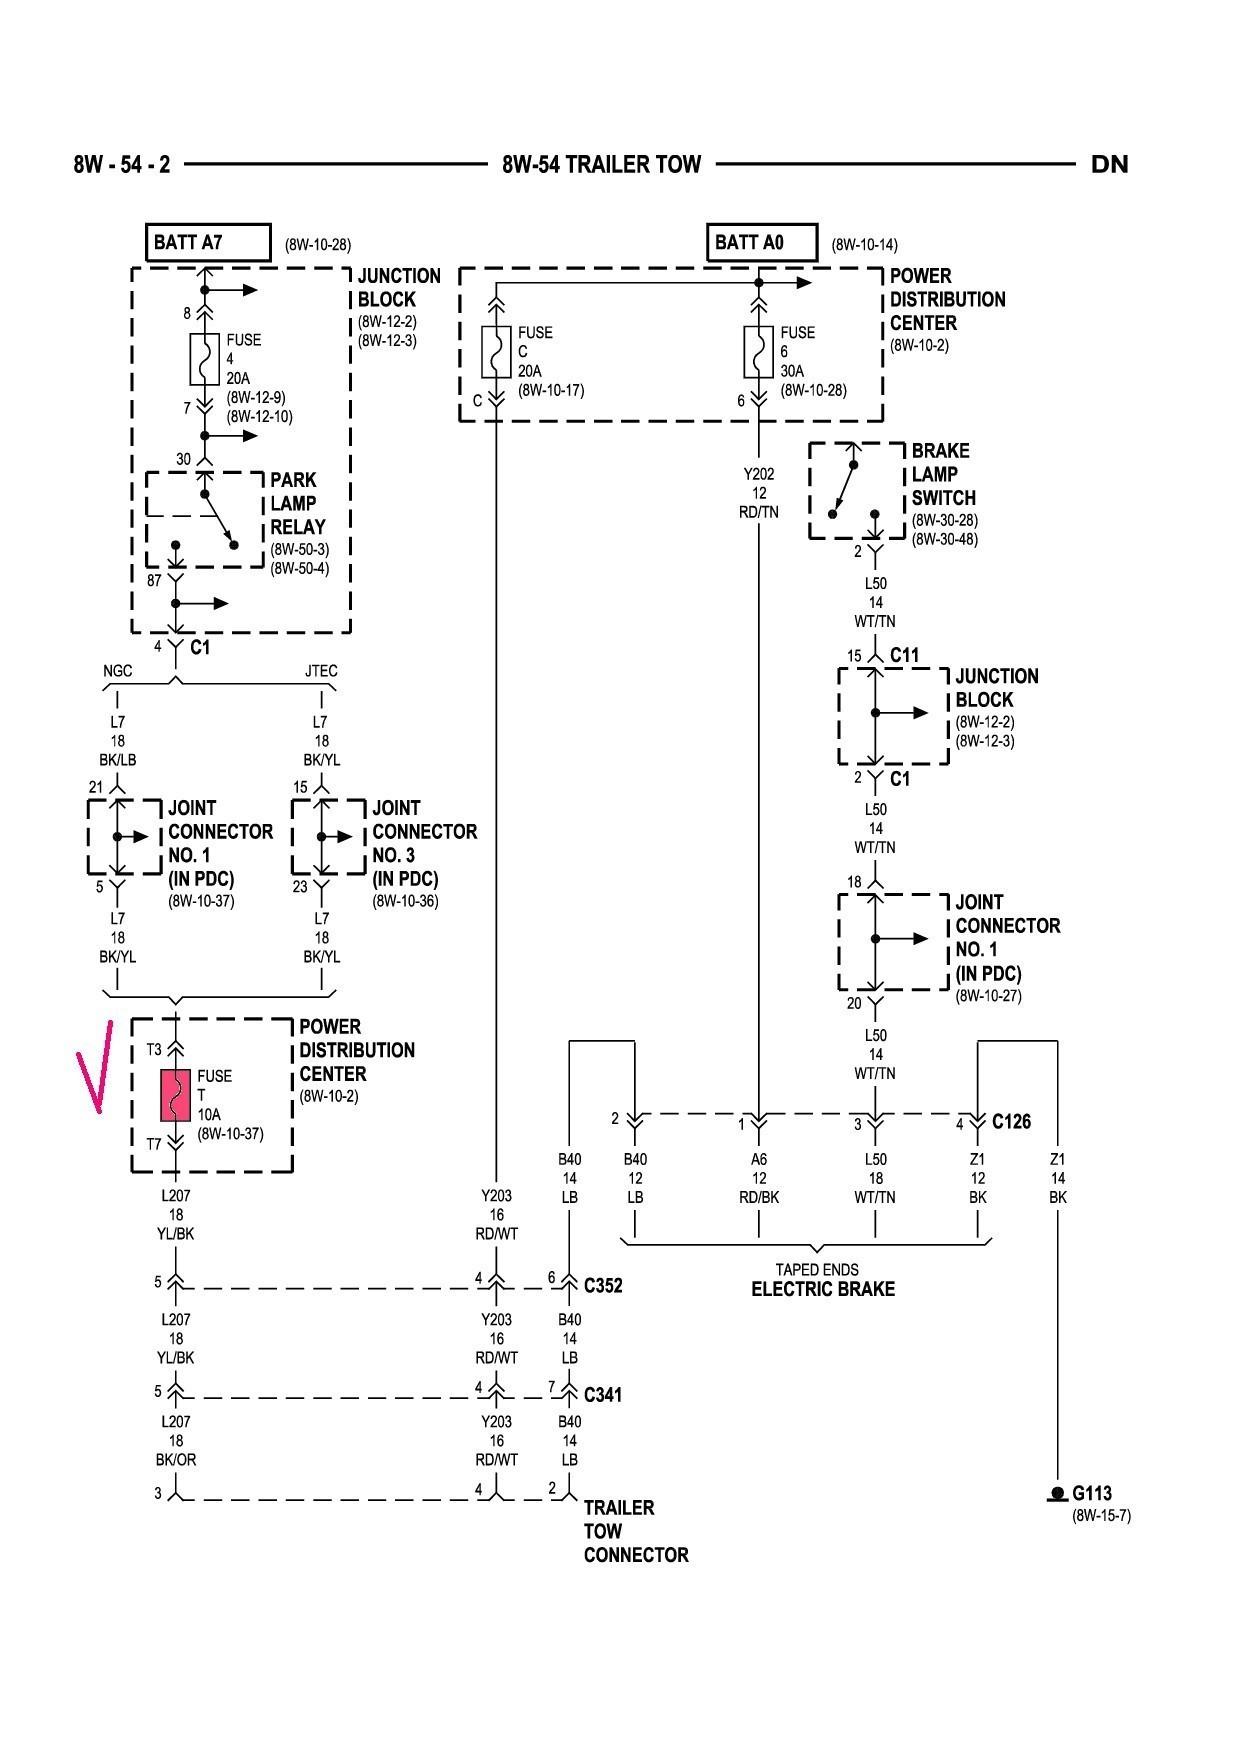 2001 Dodge 2500 Trailer Wiring Diagram - Cars Wiring ...